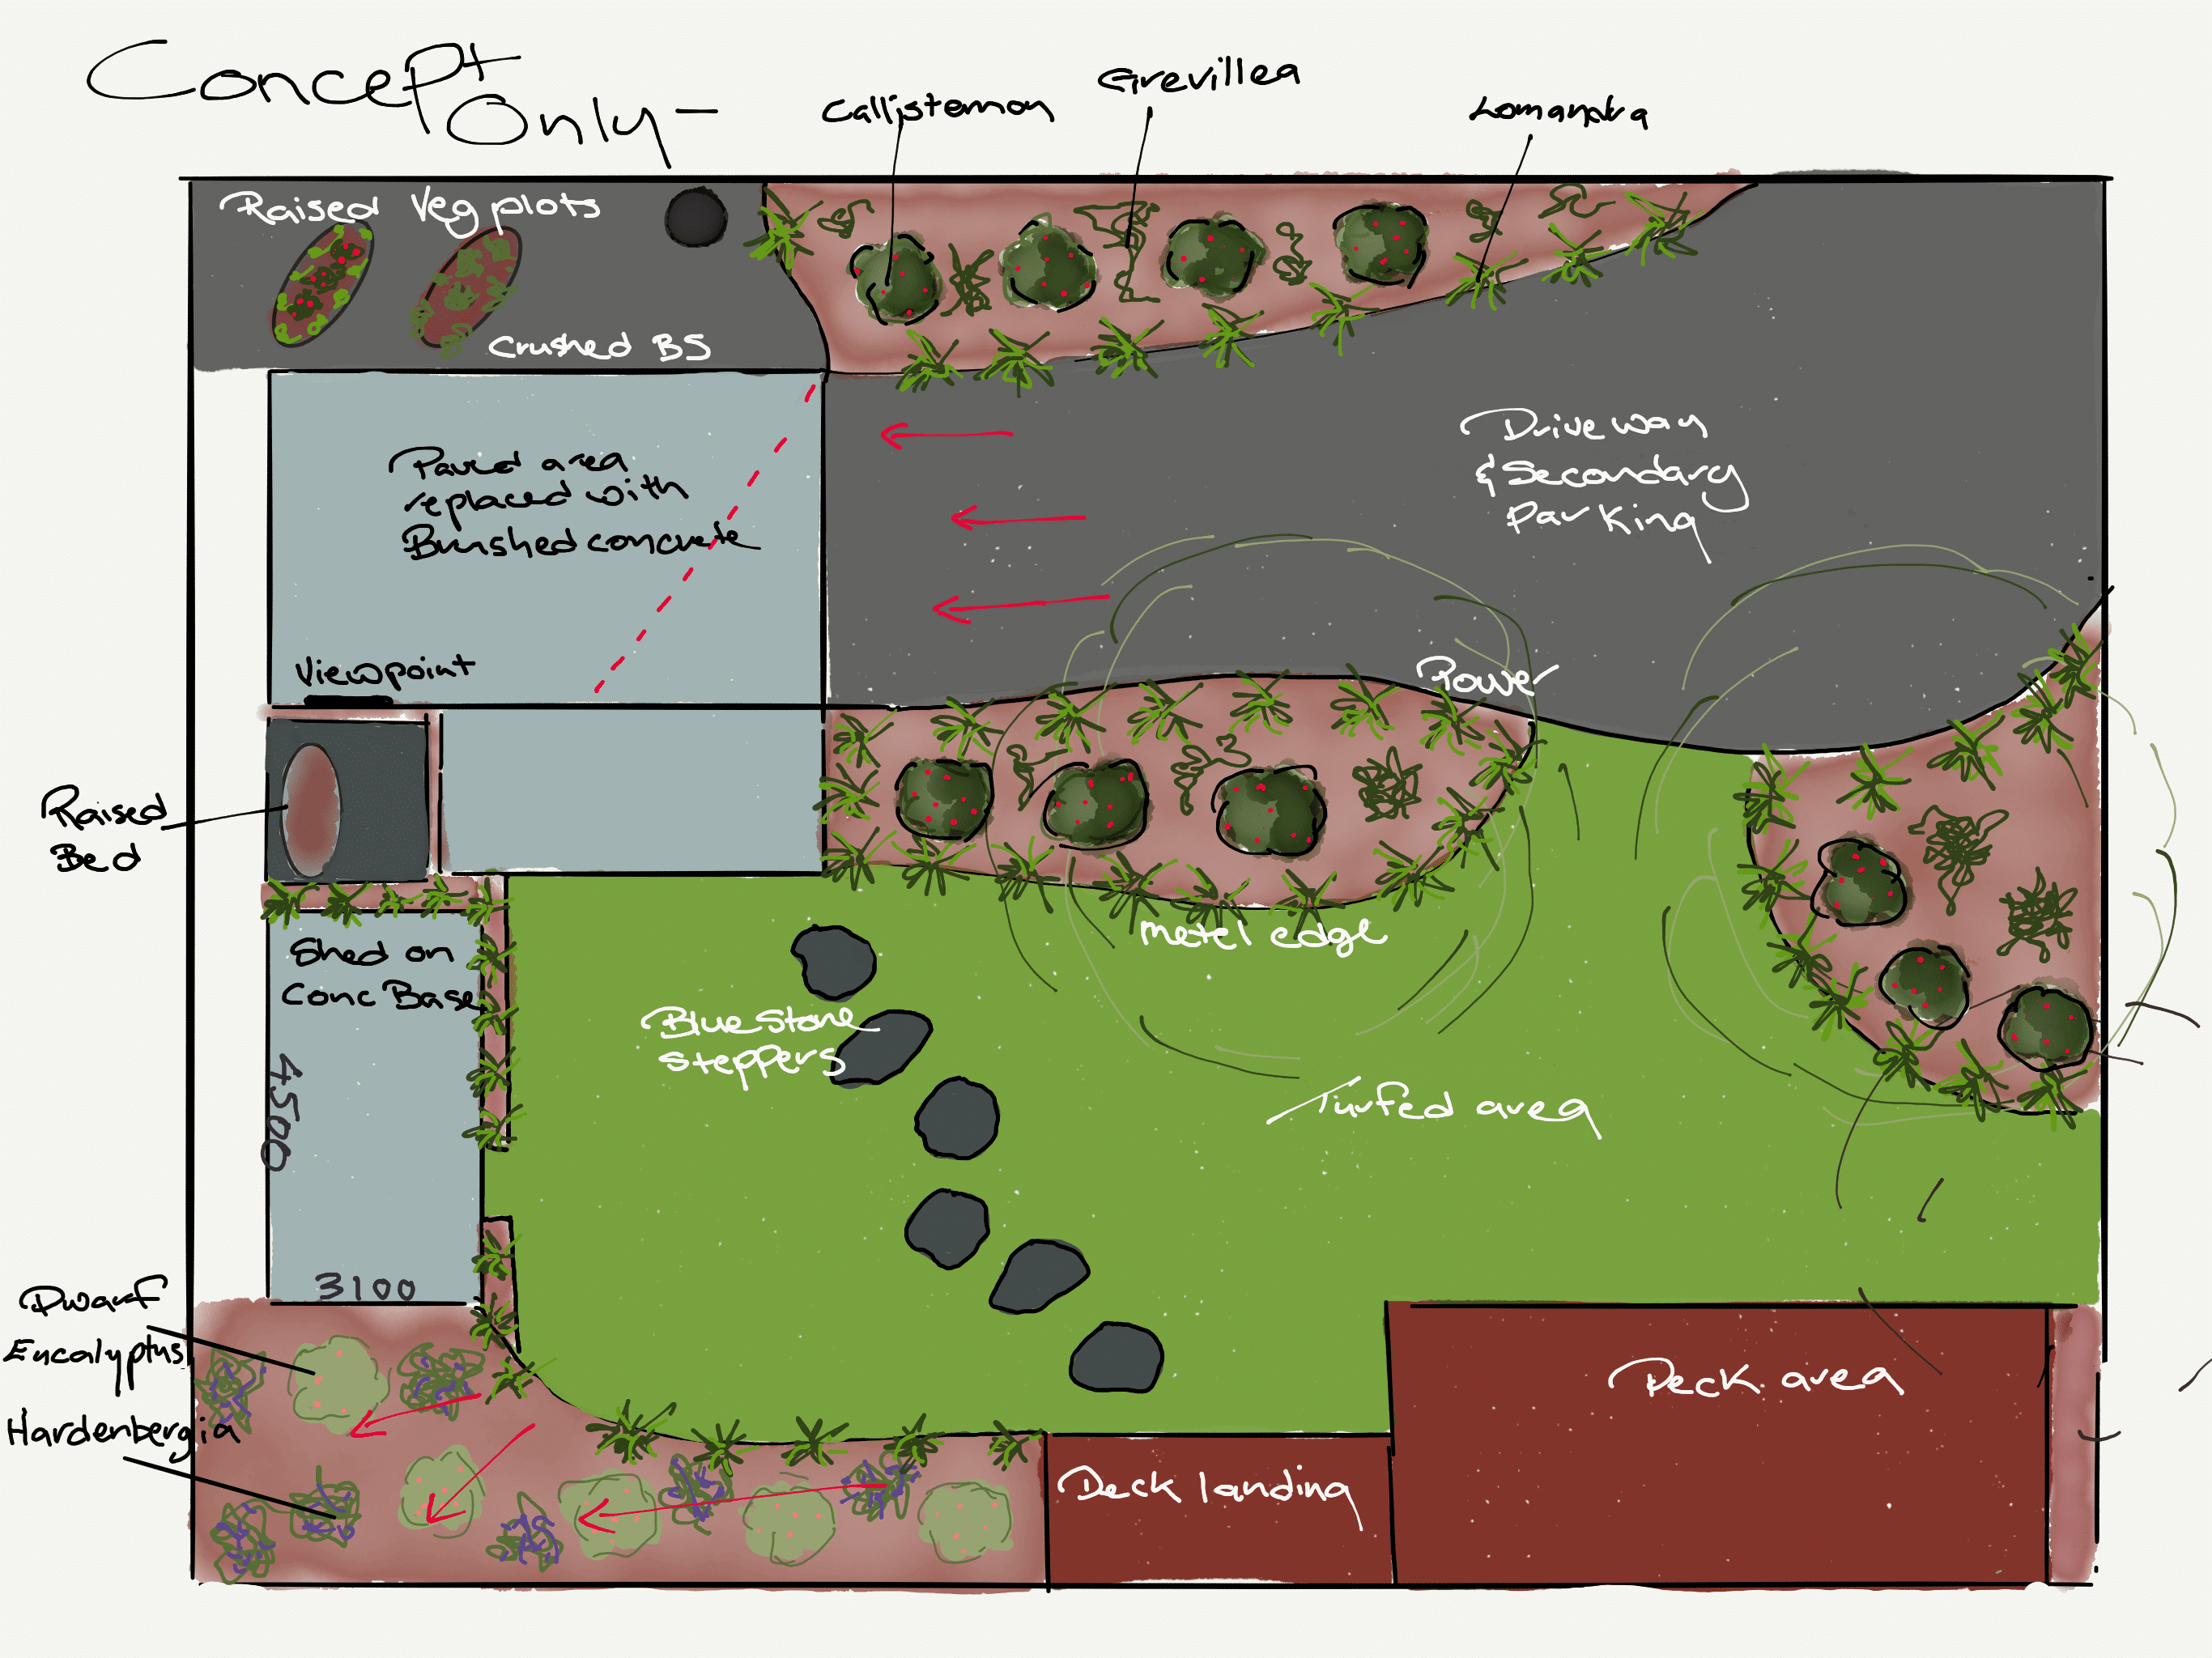 Gardengigs Project Concepts and Designs